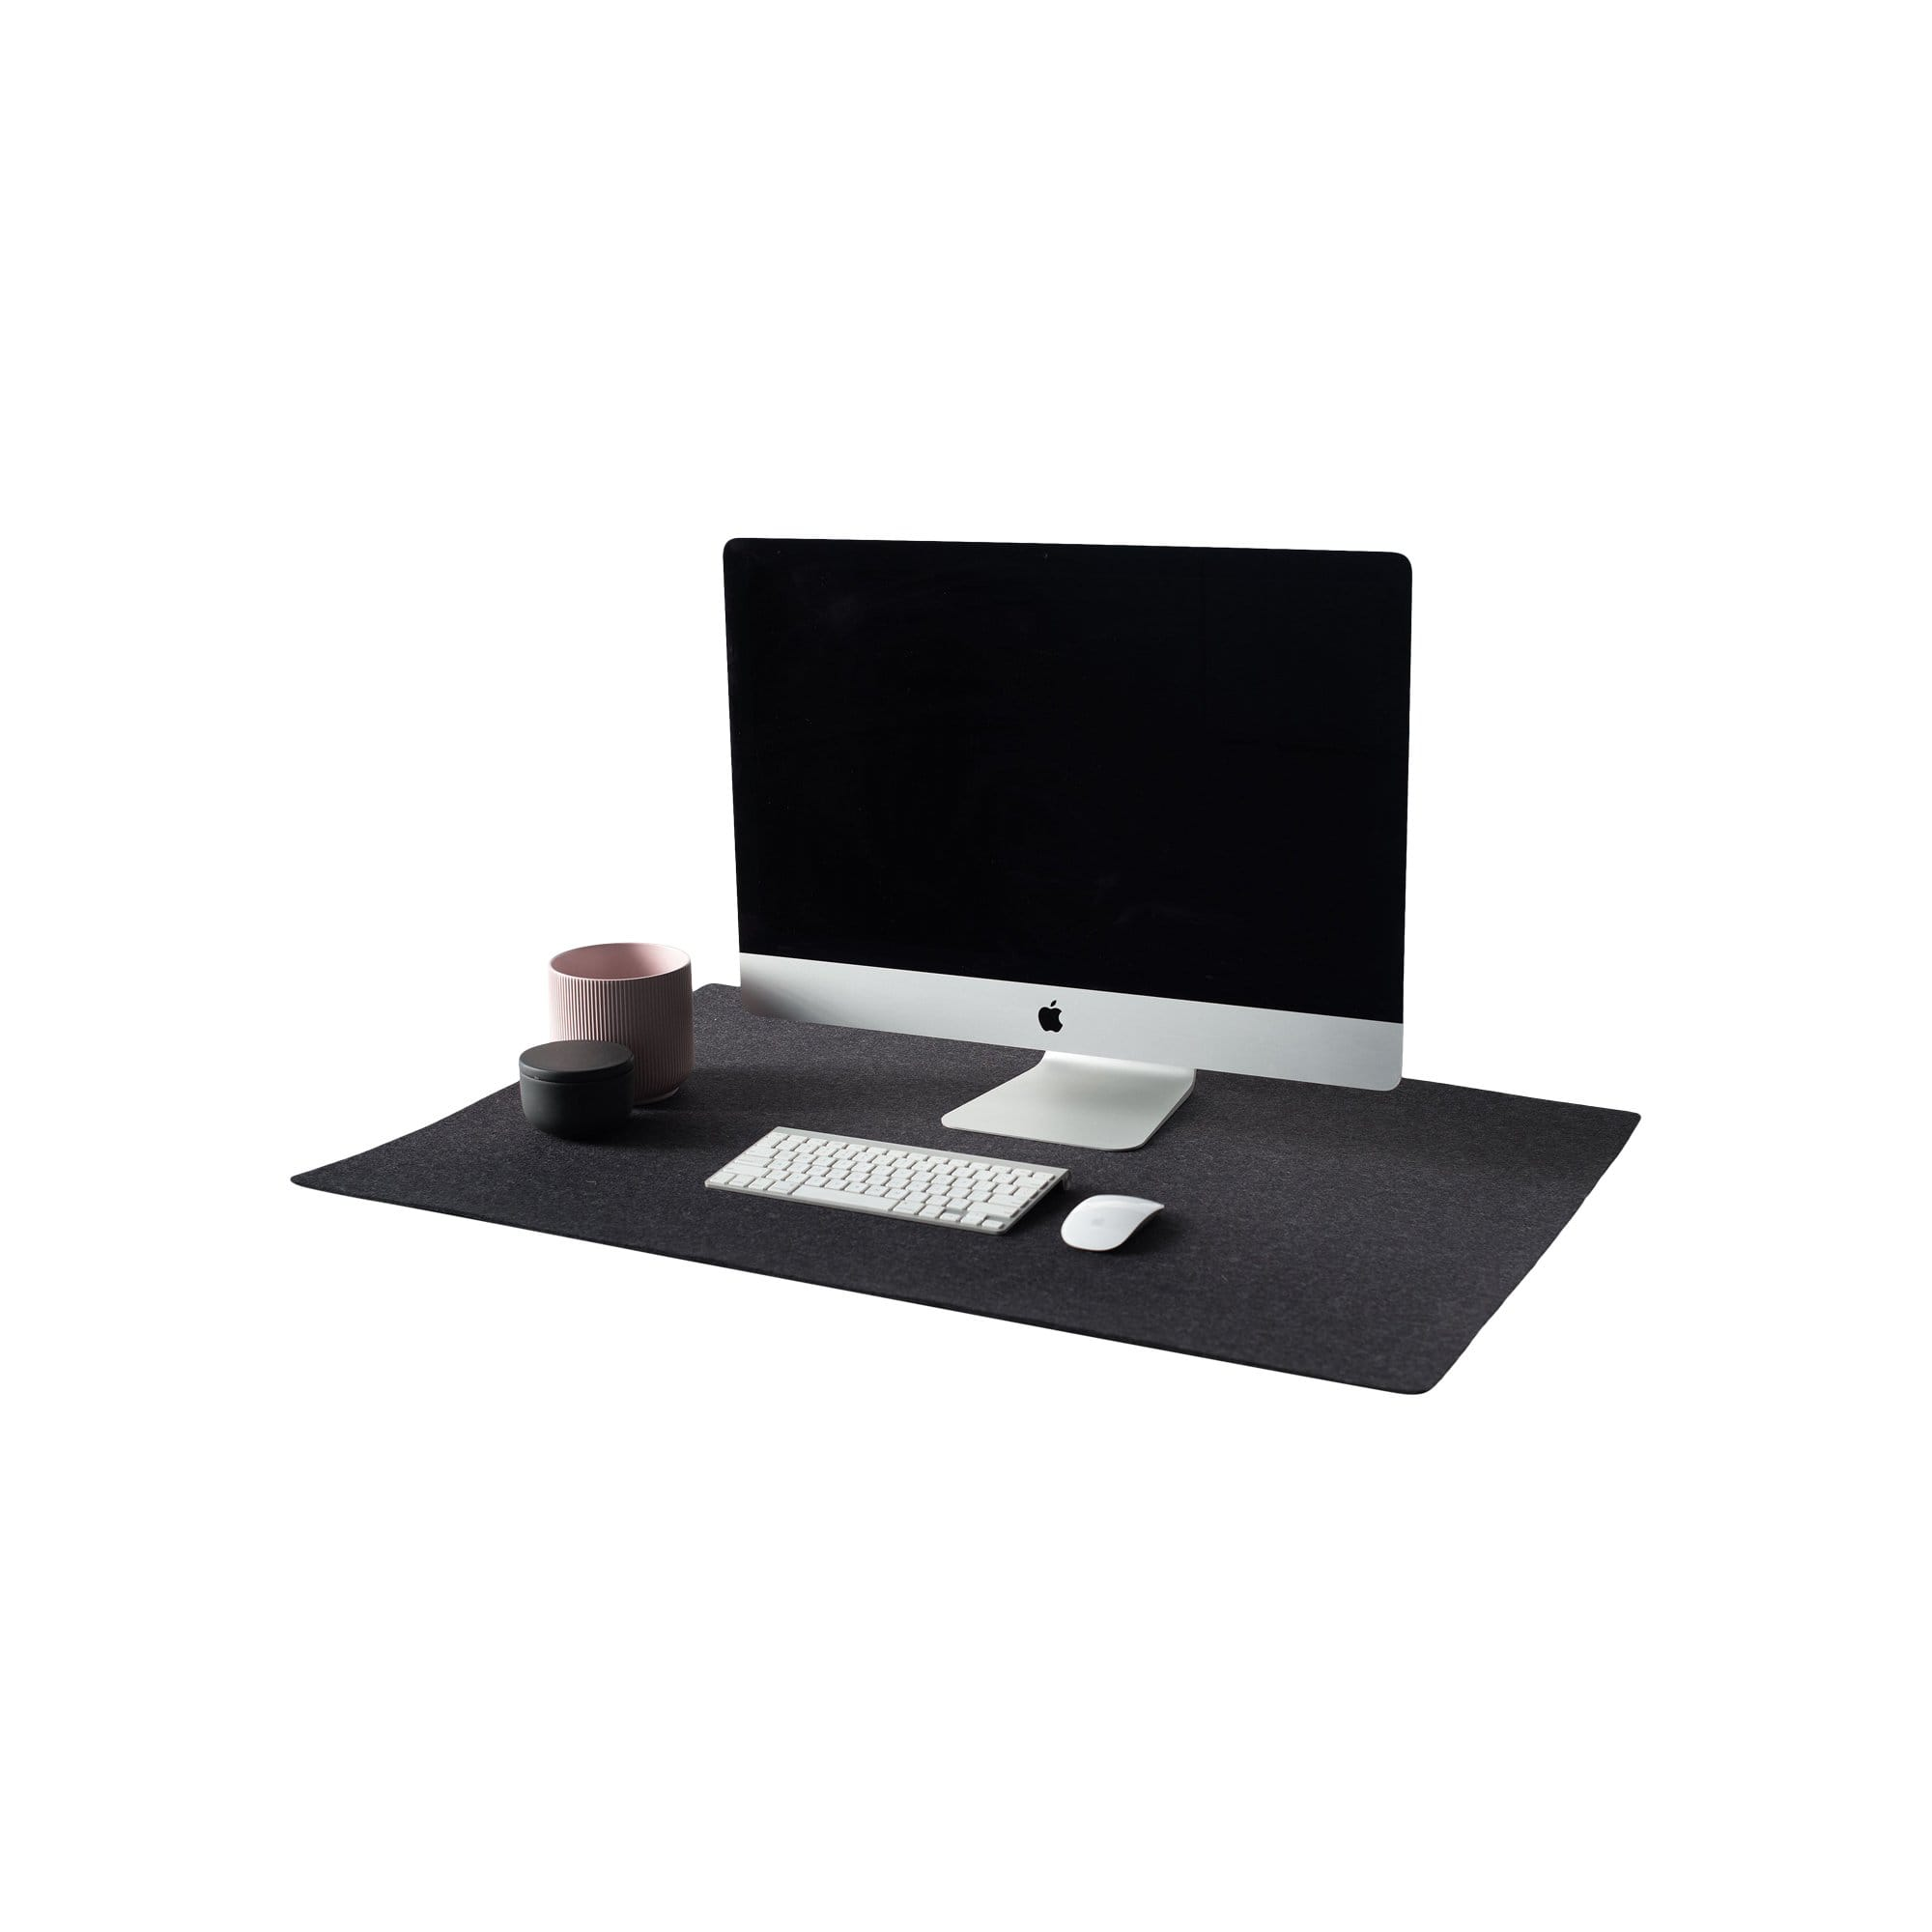 nedrelow Desk Accessories Wool Felt Desk Mat